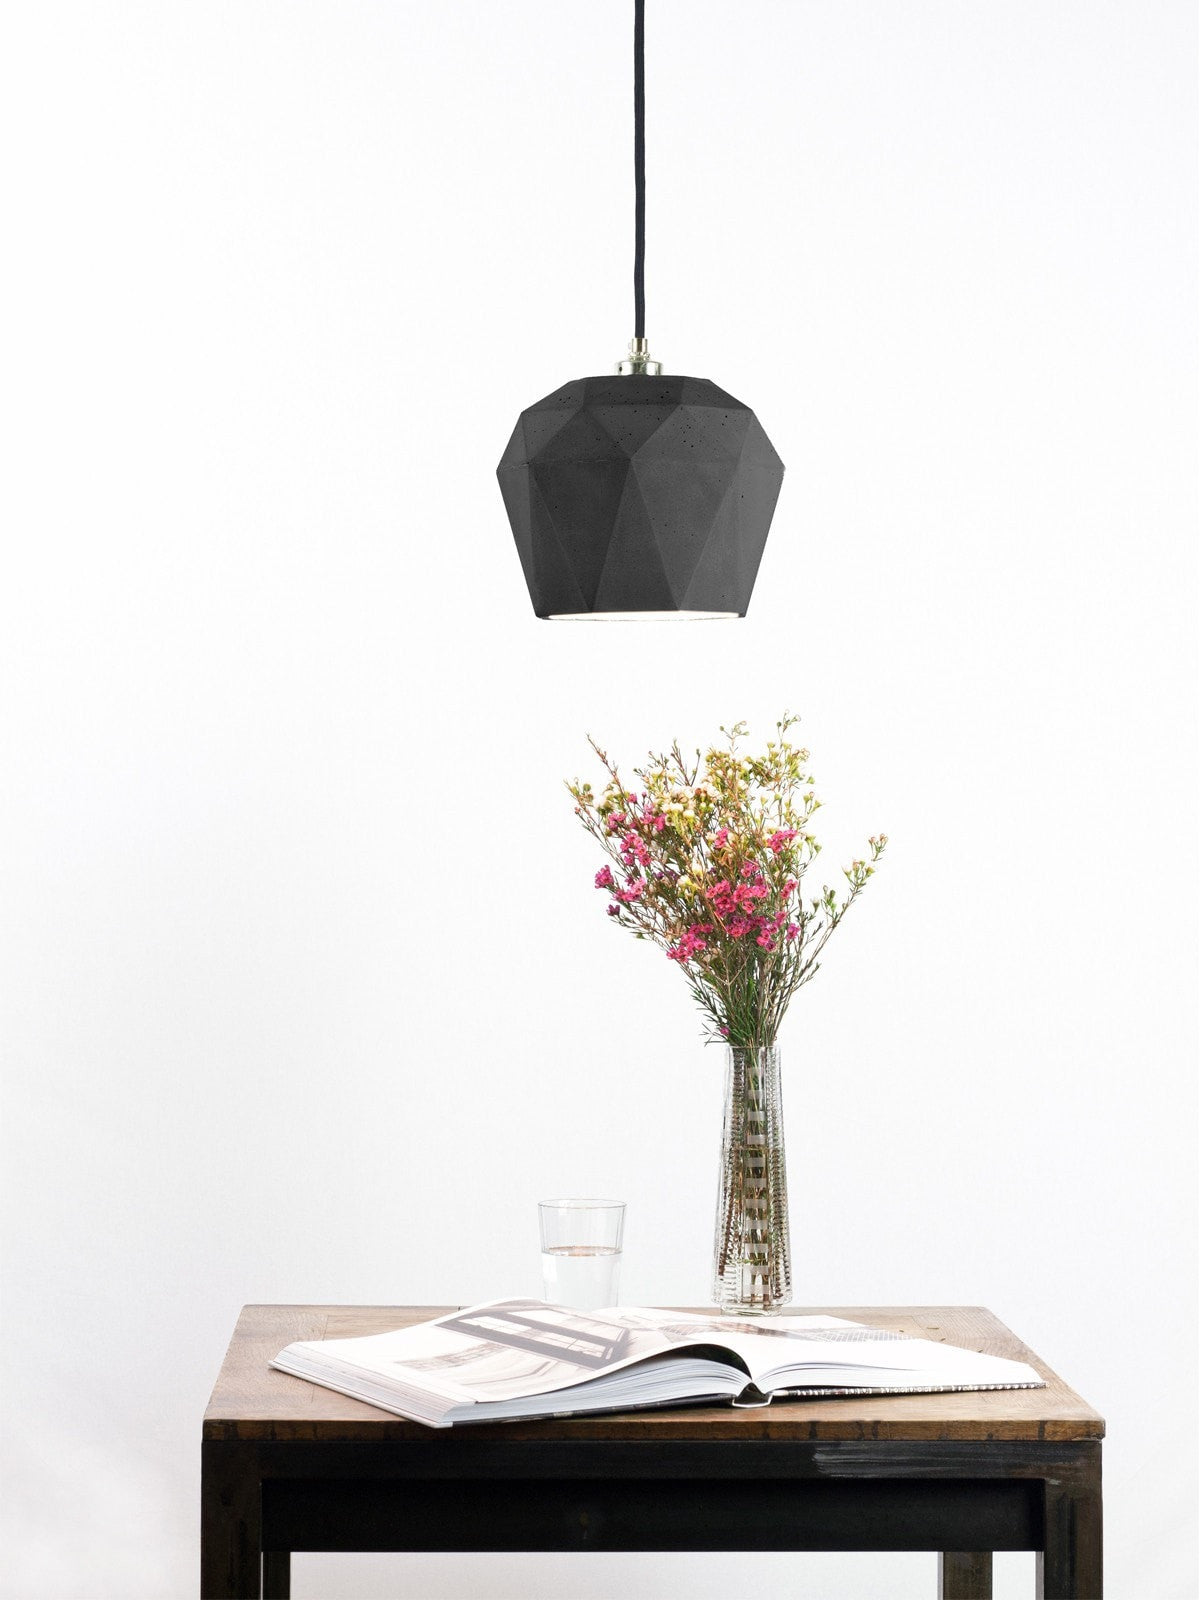 Big Diamond Pendant Dark Concrete - Slab Homewares